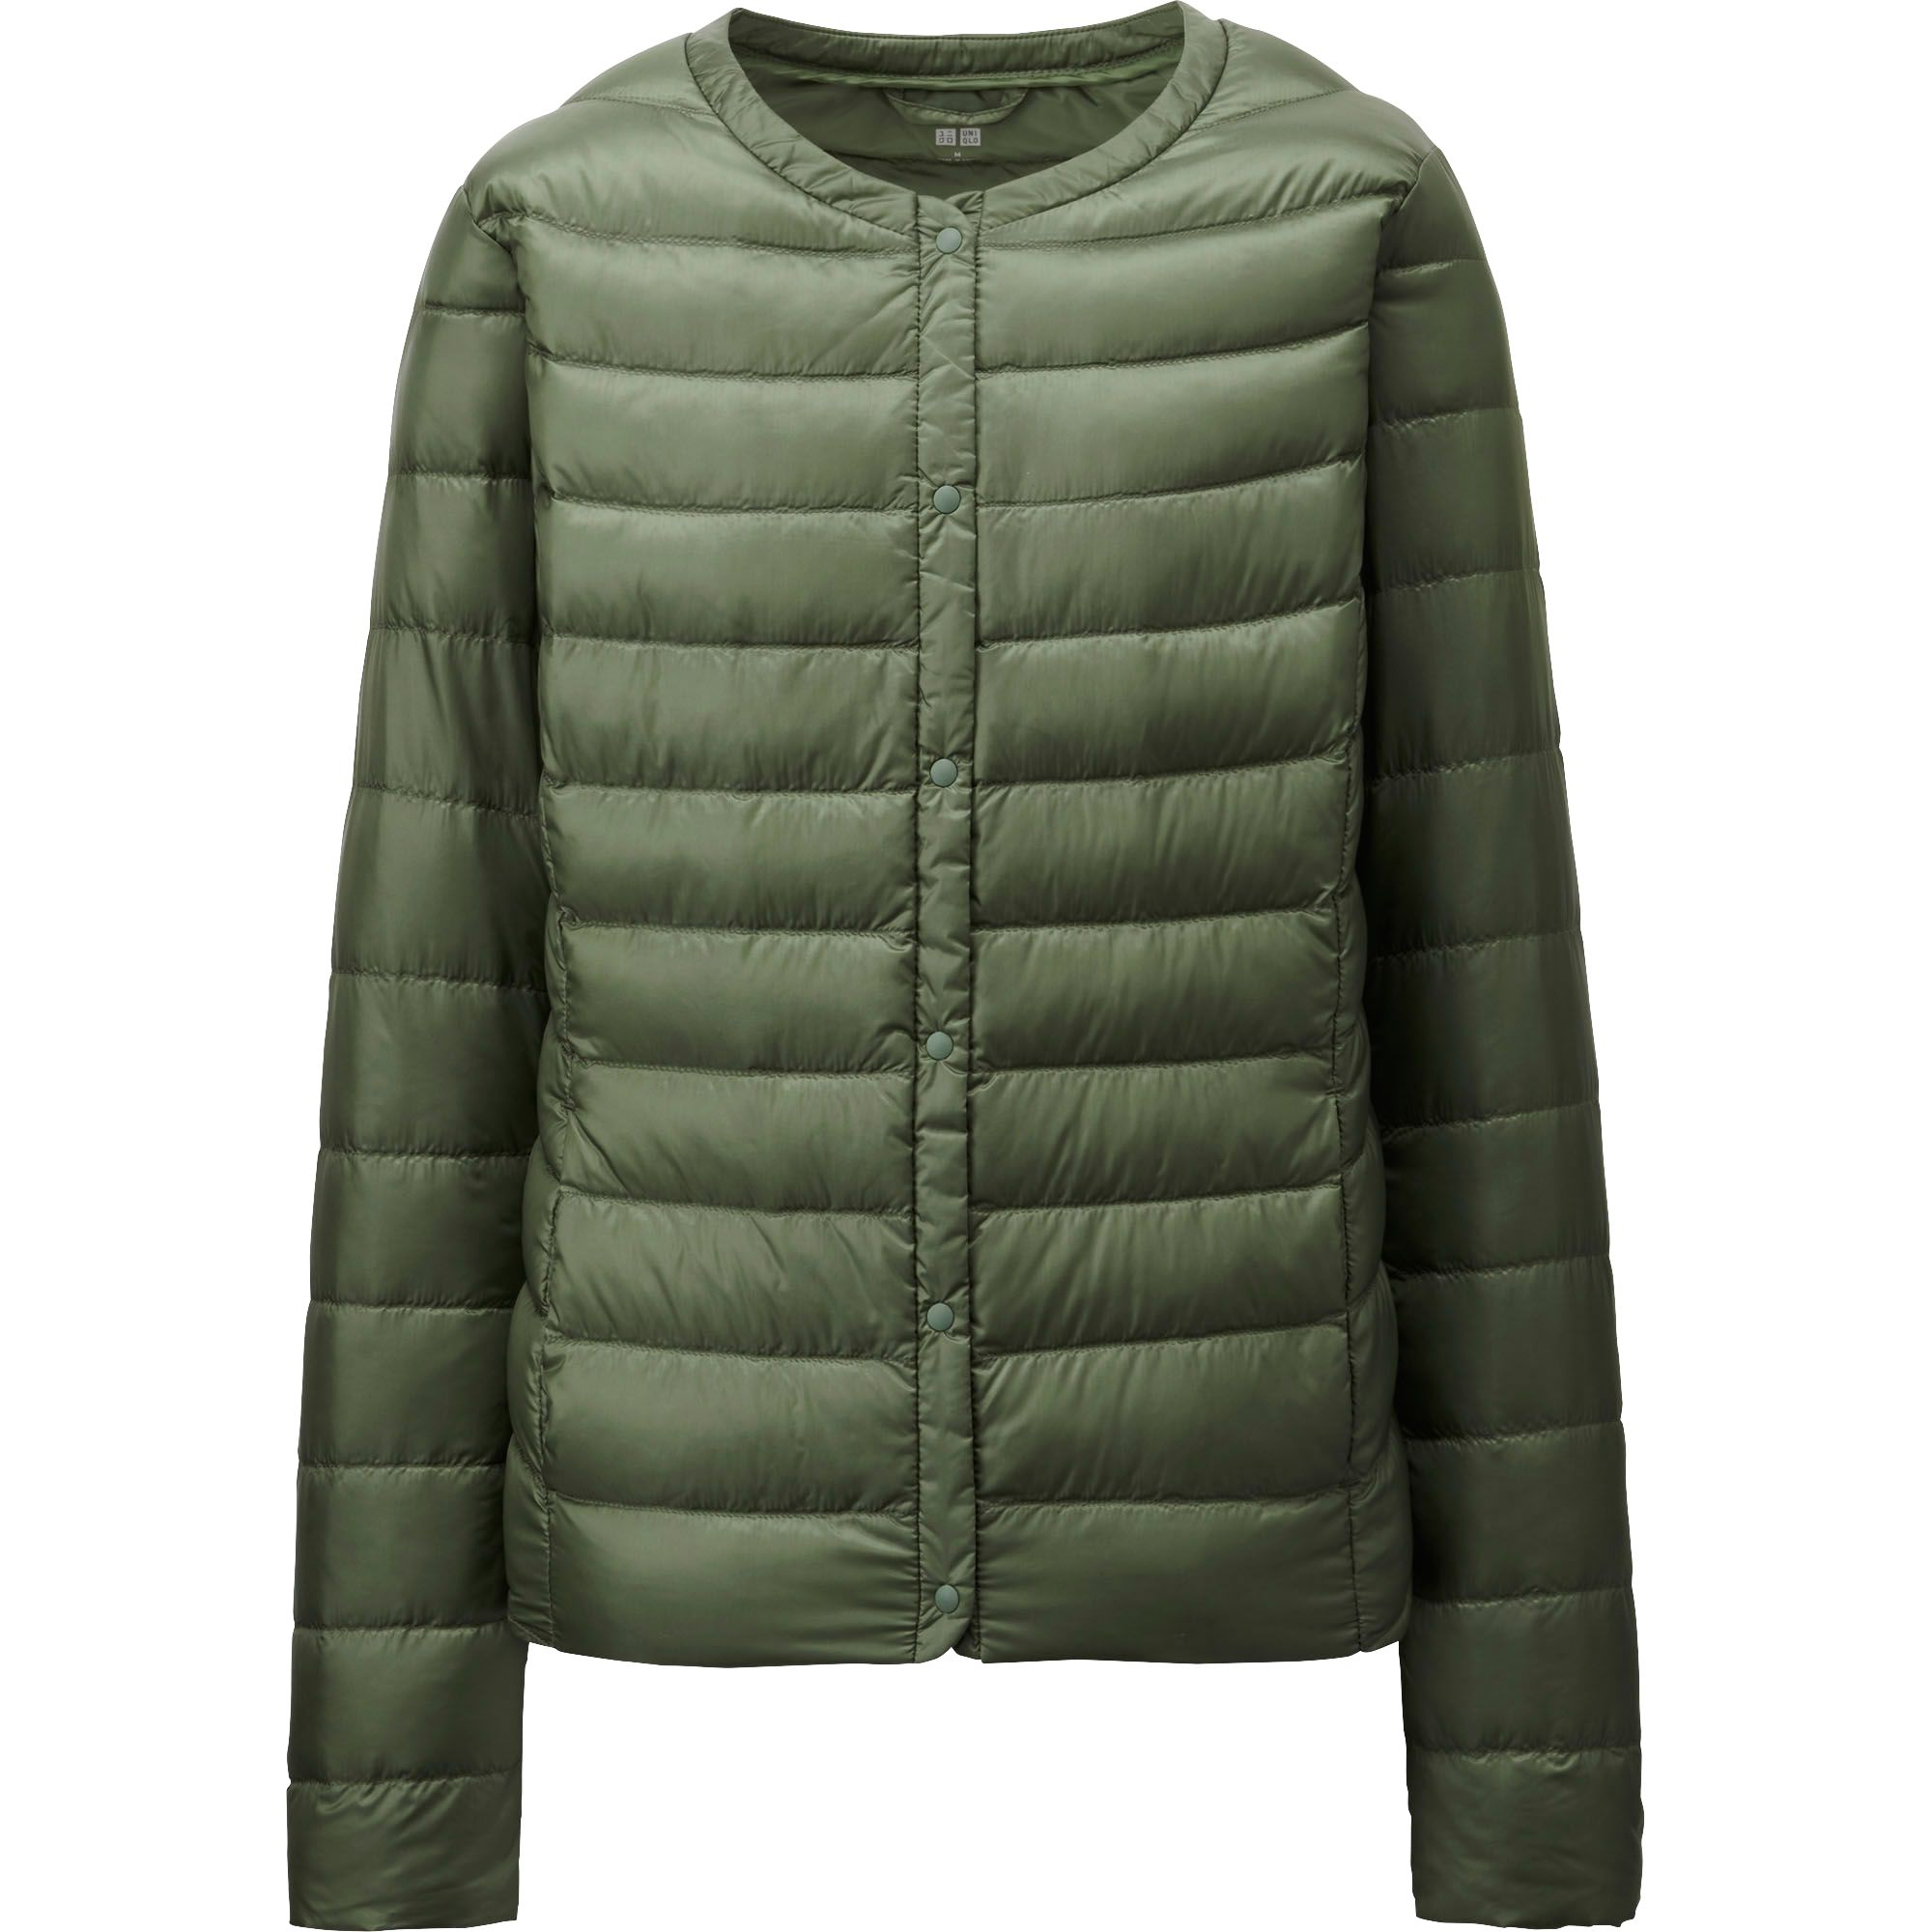 uniqlo women ultra light down compact jacket in green olive lyst. Black Bedroom Furniture Sets. Home Design Ideas